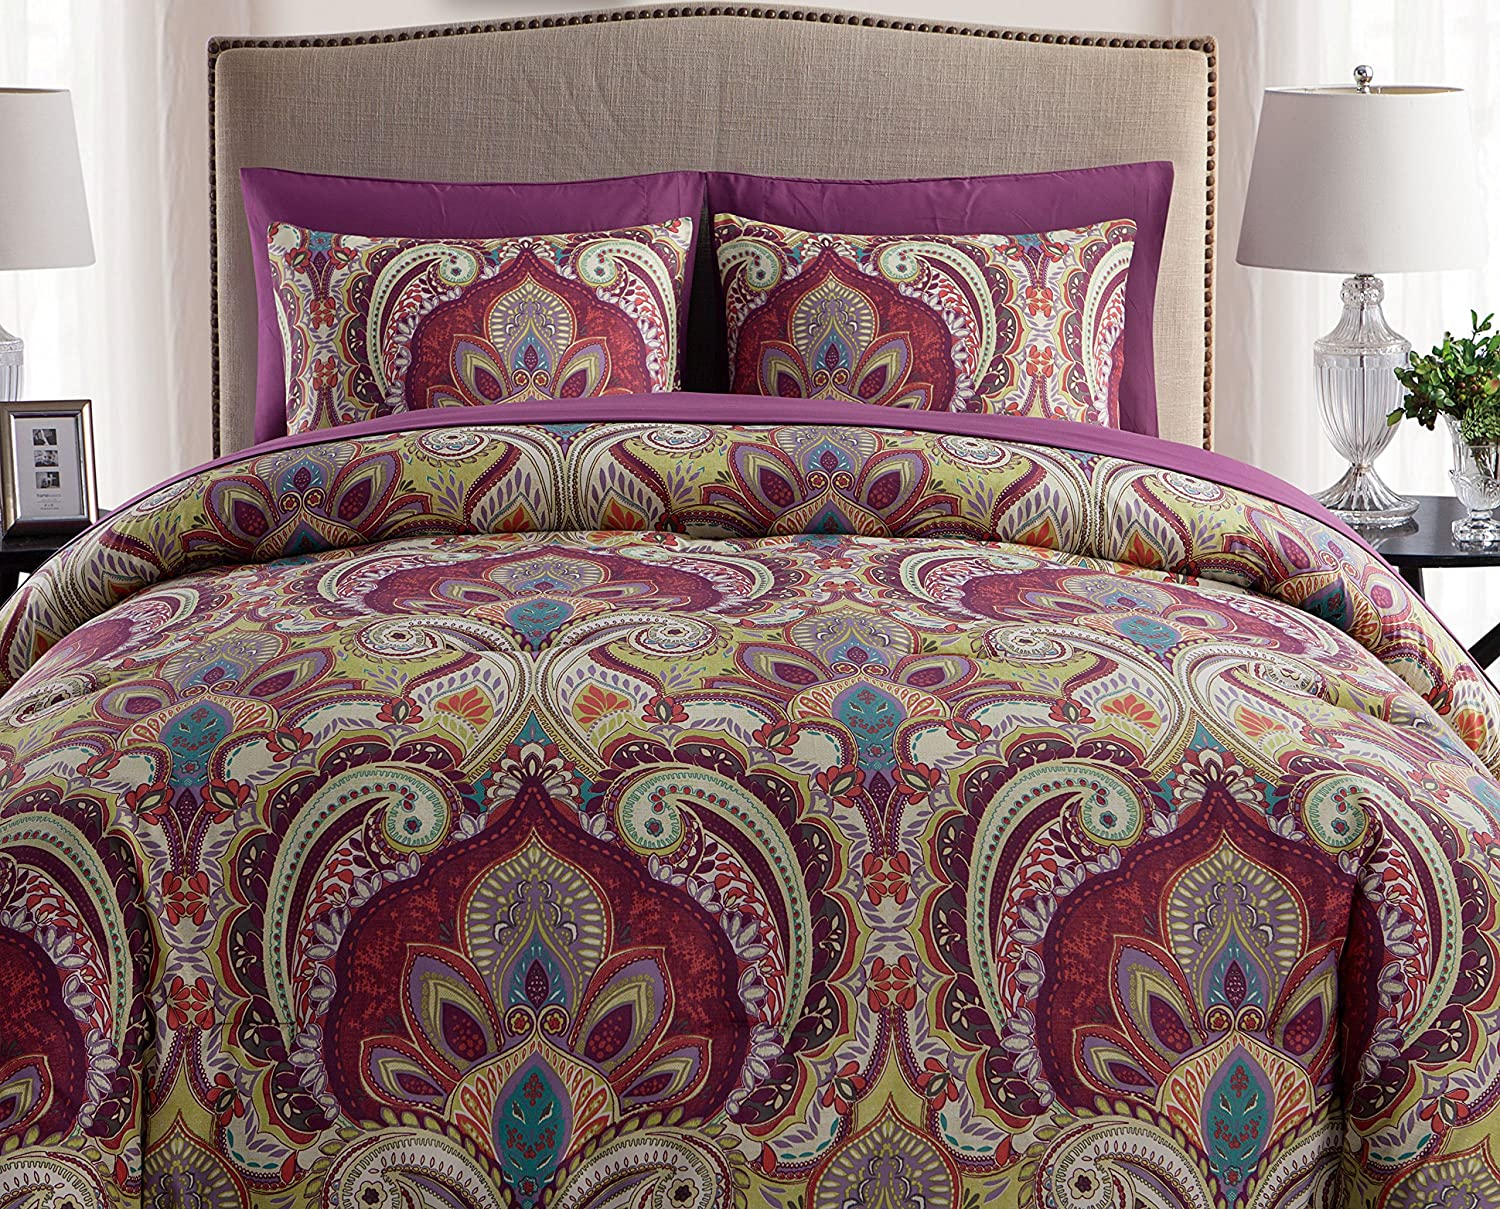 Paisley 8pc Bed-in-a-Bag Comforter Set, King